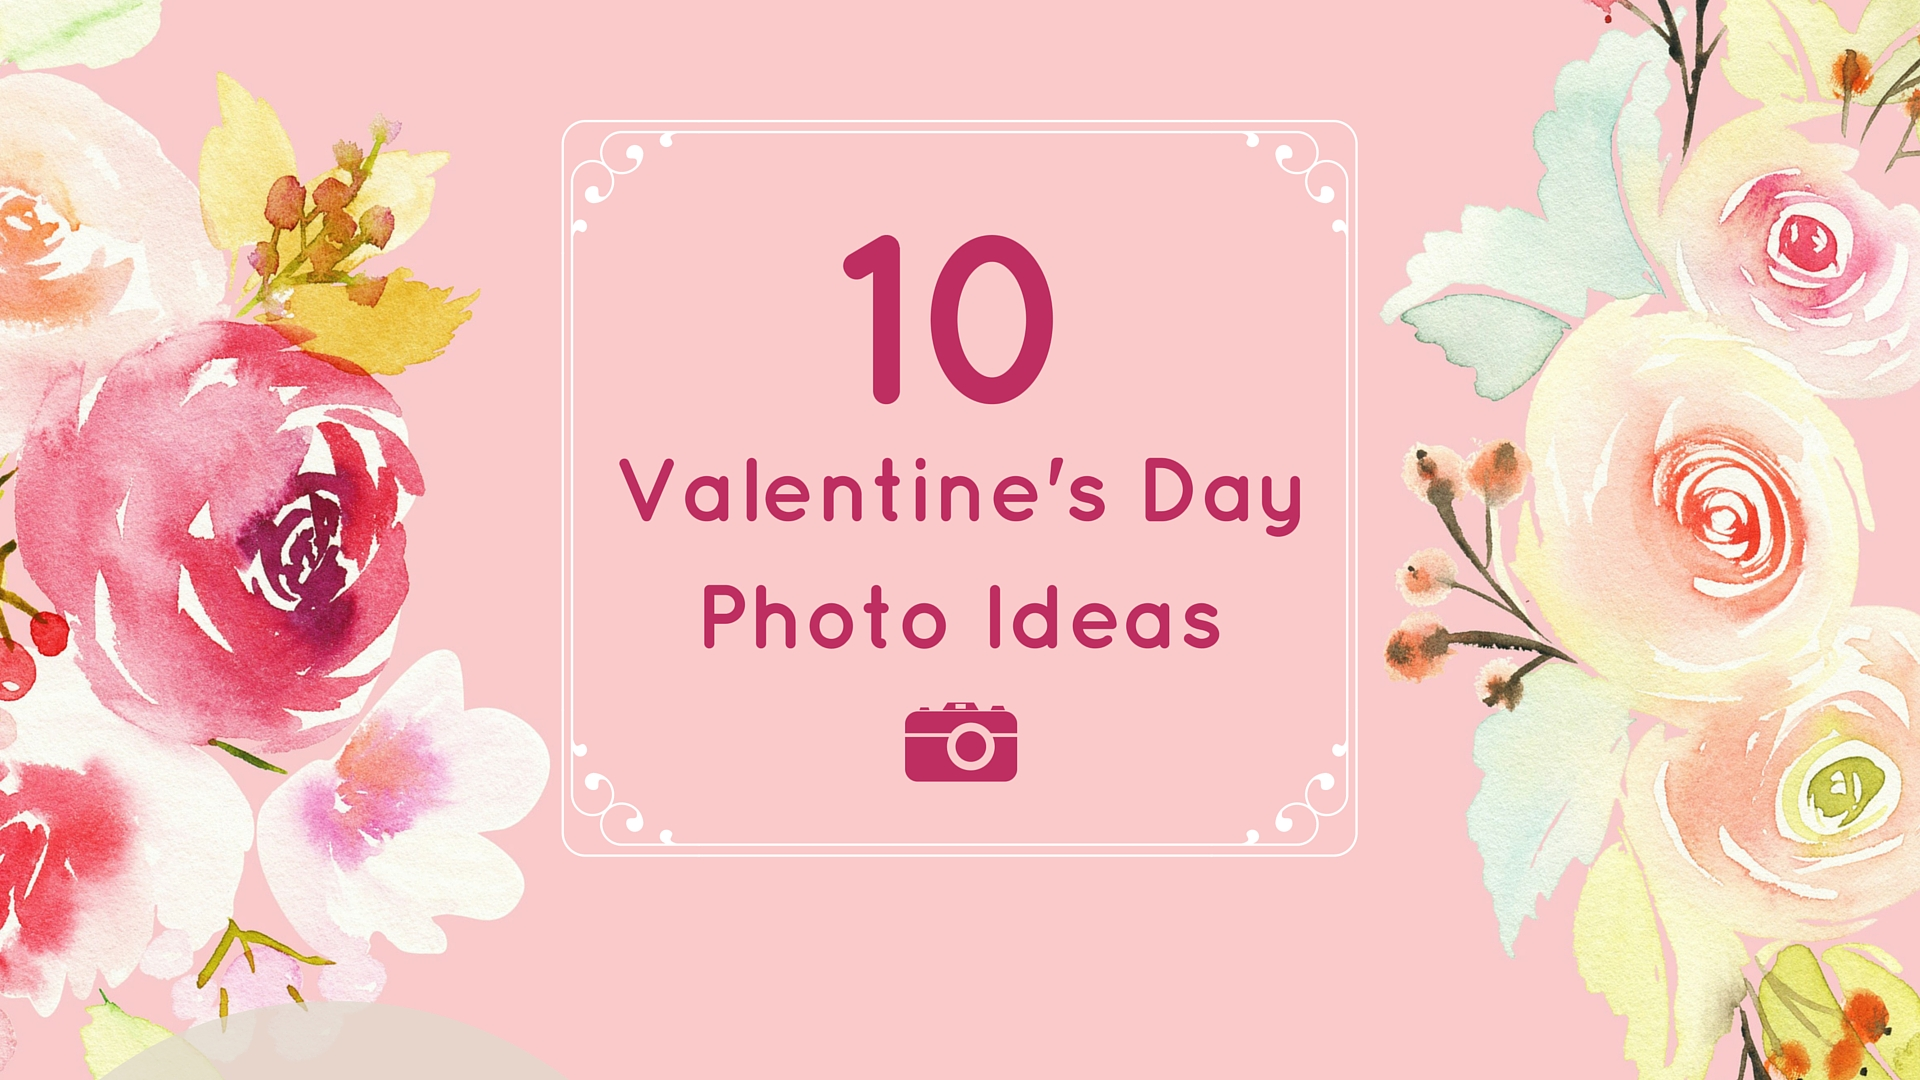 ValentinesPhoto 10 Cupid Approved Photo Ideas for the Perfect Valentines Day Gift